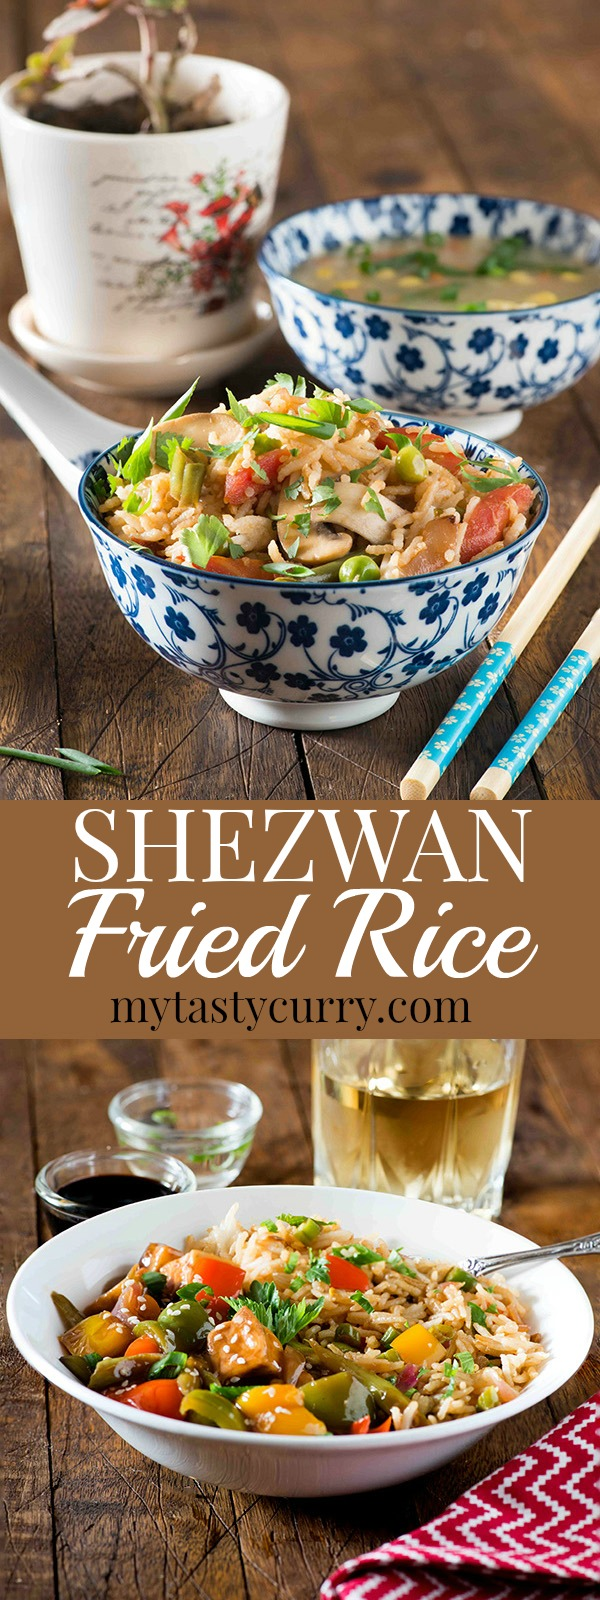 Indo chinese Schezwan fried rice is a favourite at home. It's quick, It's spicy and it's tasty and ready in 20 minutes. All you need is lots of vegetables and cooked rice for making this schezwan fried rice recipe. For me making such dishes is always more convenient than ordering a takeout as I always have these convenient chopped veggie boxes ready to go